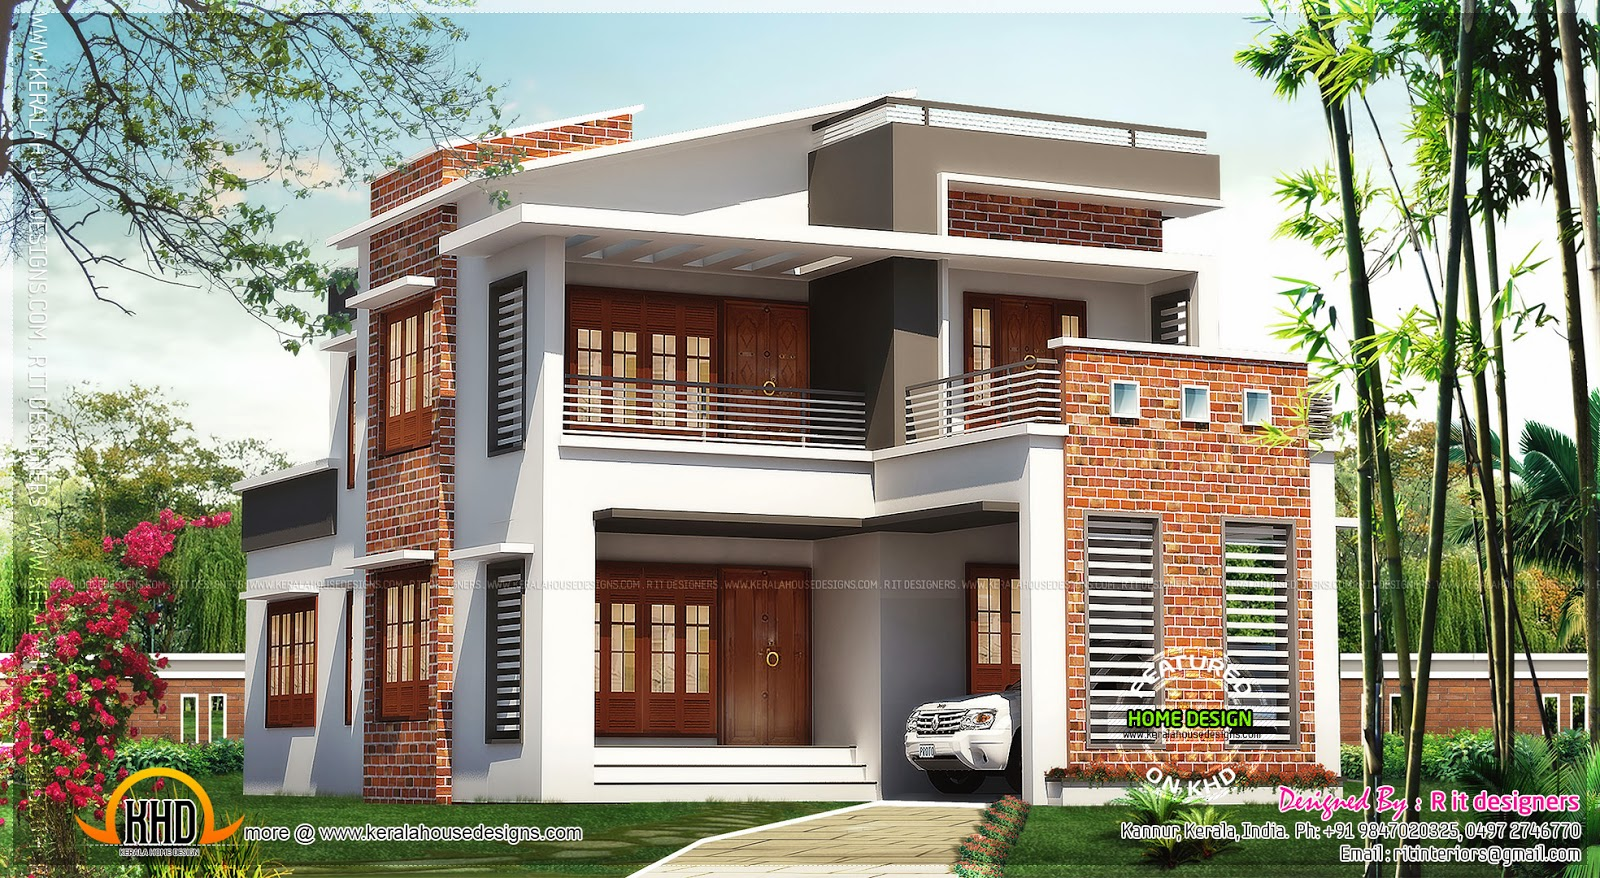 Brick mix house exterior design kerala home design and for Home design exterior india